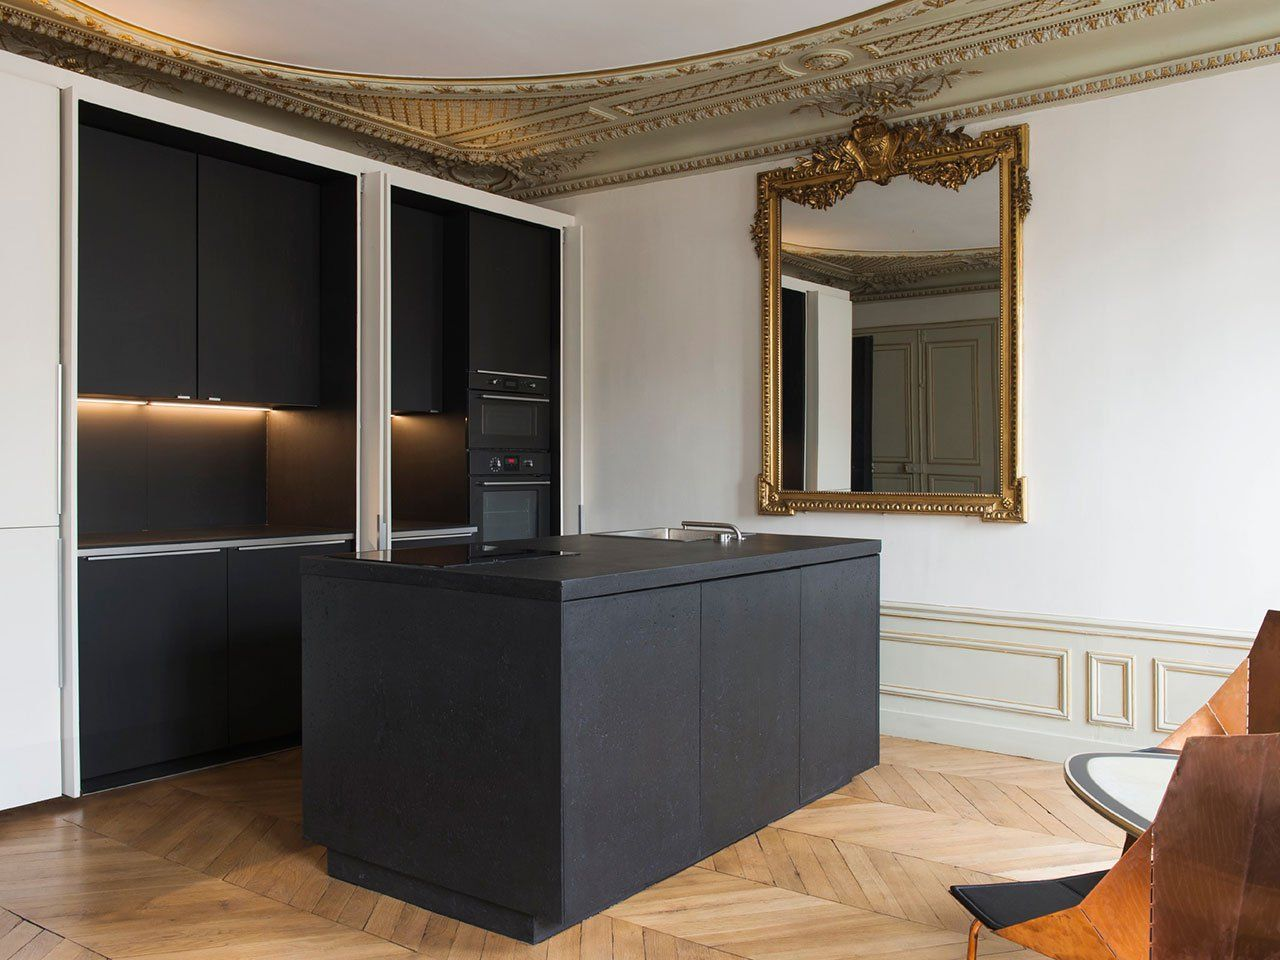 Lovely Bourgeois Opulence Meets Crisp Modernism In A Renovated Parisian Apartment  By Diego Delgado Elias. Cheap KitchenKitchen OvenBacksplash ...